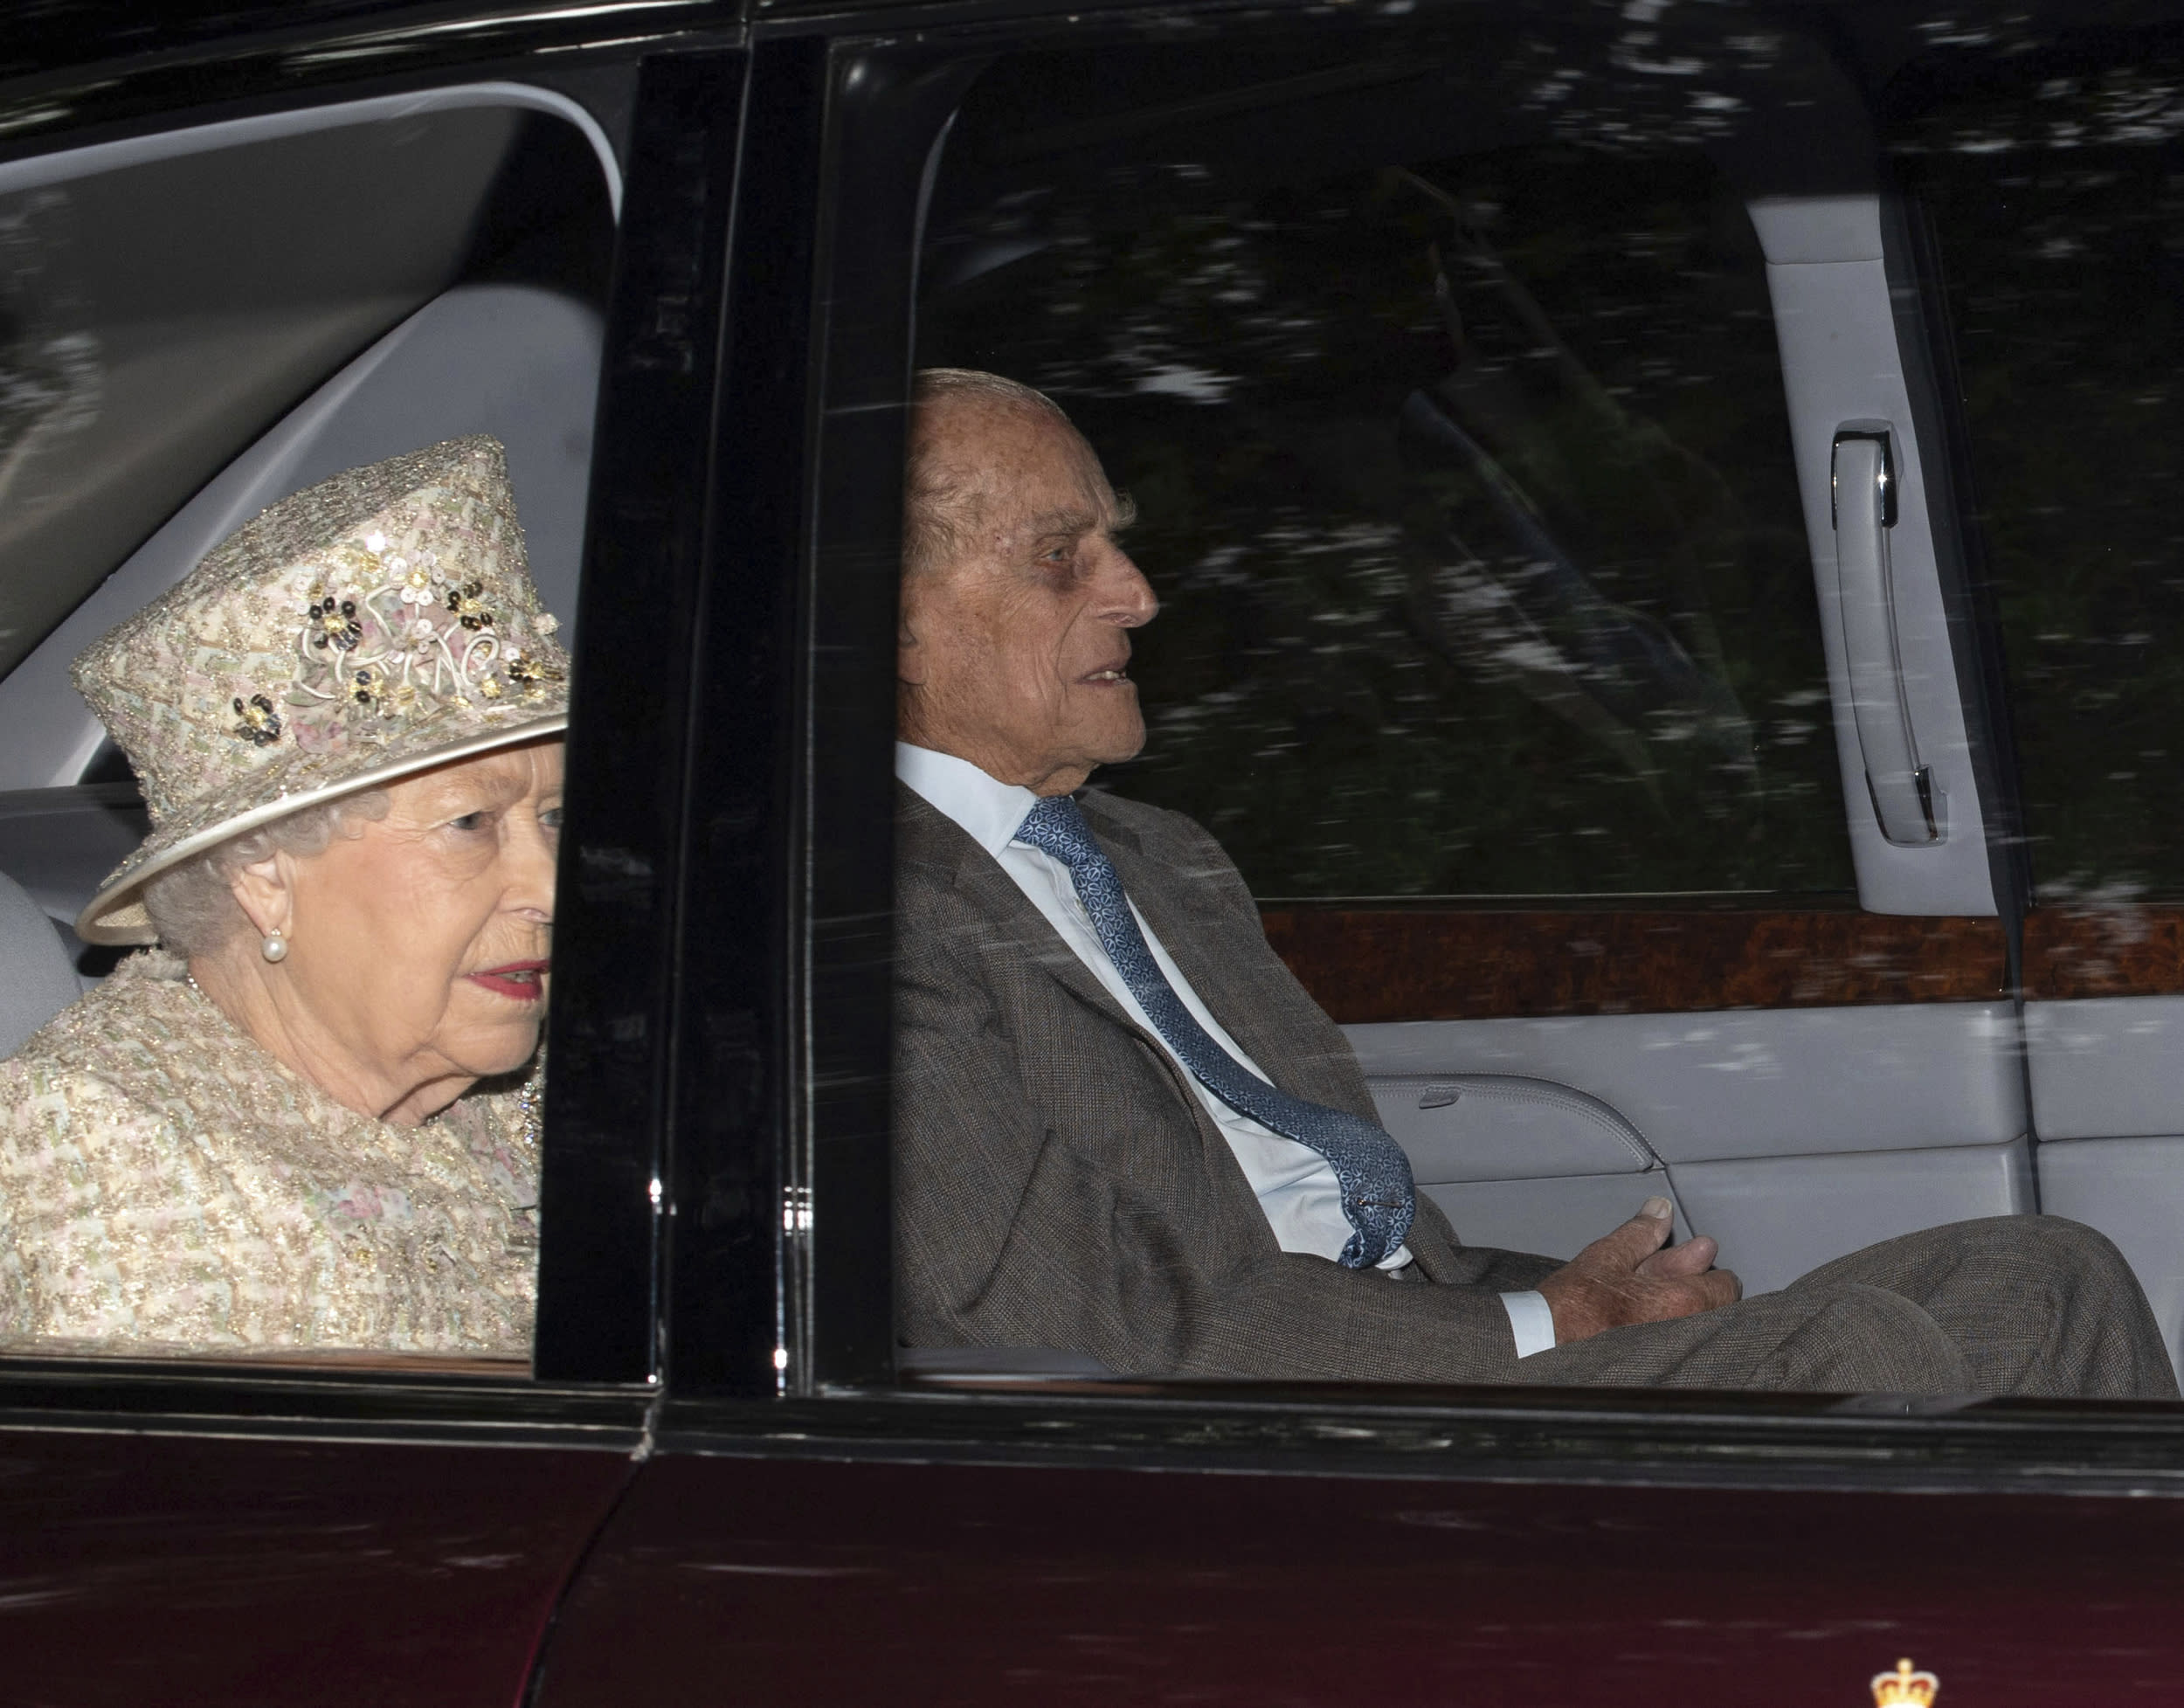 January 17, 2019 - Prince Philip The Duke of Edinburgh was not injured in a two-car crash as he was driving his Land Rover near Sandringham Estate. - File Photo by: zz/KGC-492/STAR MAX/IPx 2018 8/19/18 Her Majesty Queen Elizabeth II is joined by Prince Philip The Duke of Edinburgh, Charles The Prince of Wales and Camilla The Duchess of Cornwall as she attends the Sunday Church Service at Crathie Kirk - the regular place of worship of the British Royal Family when they are on holiday at Balmoral Castle. (Crathie, Aberdeenshire, Scotland, UK)